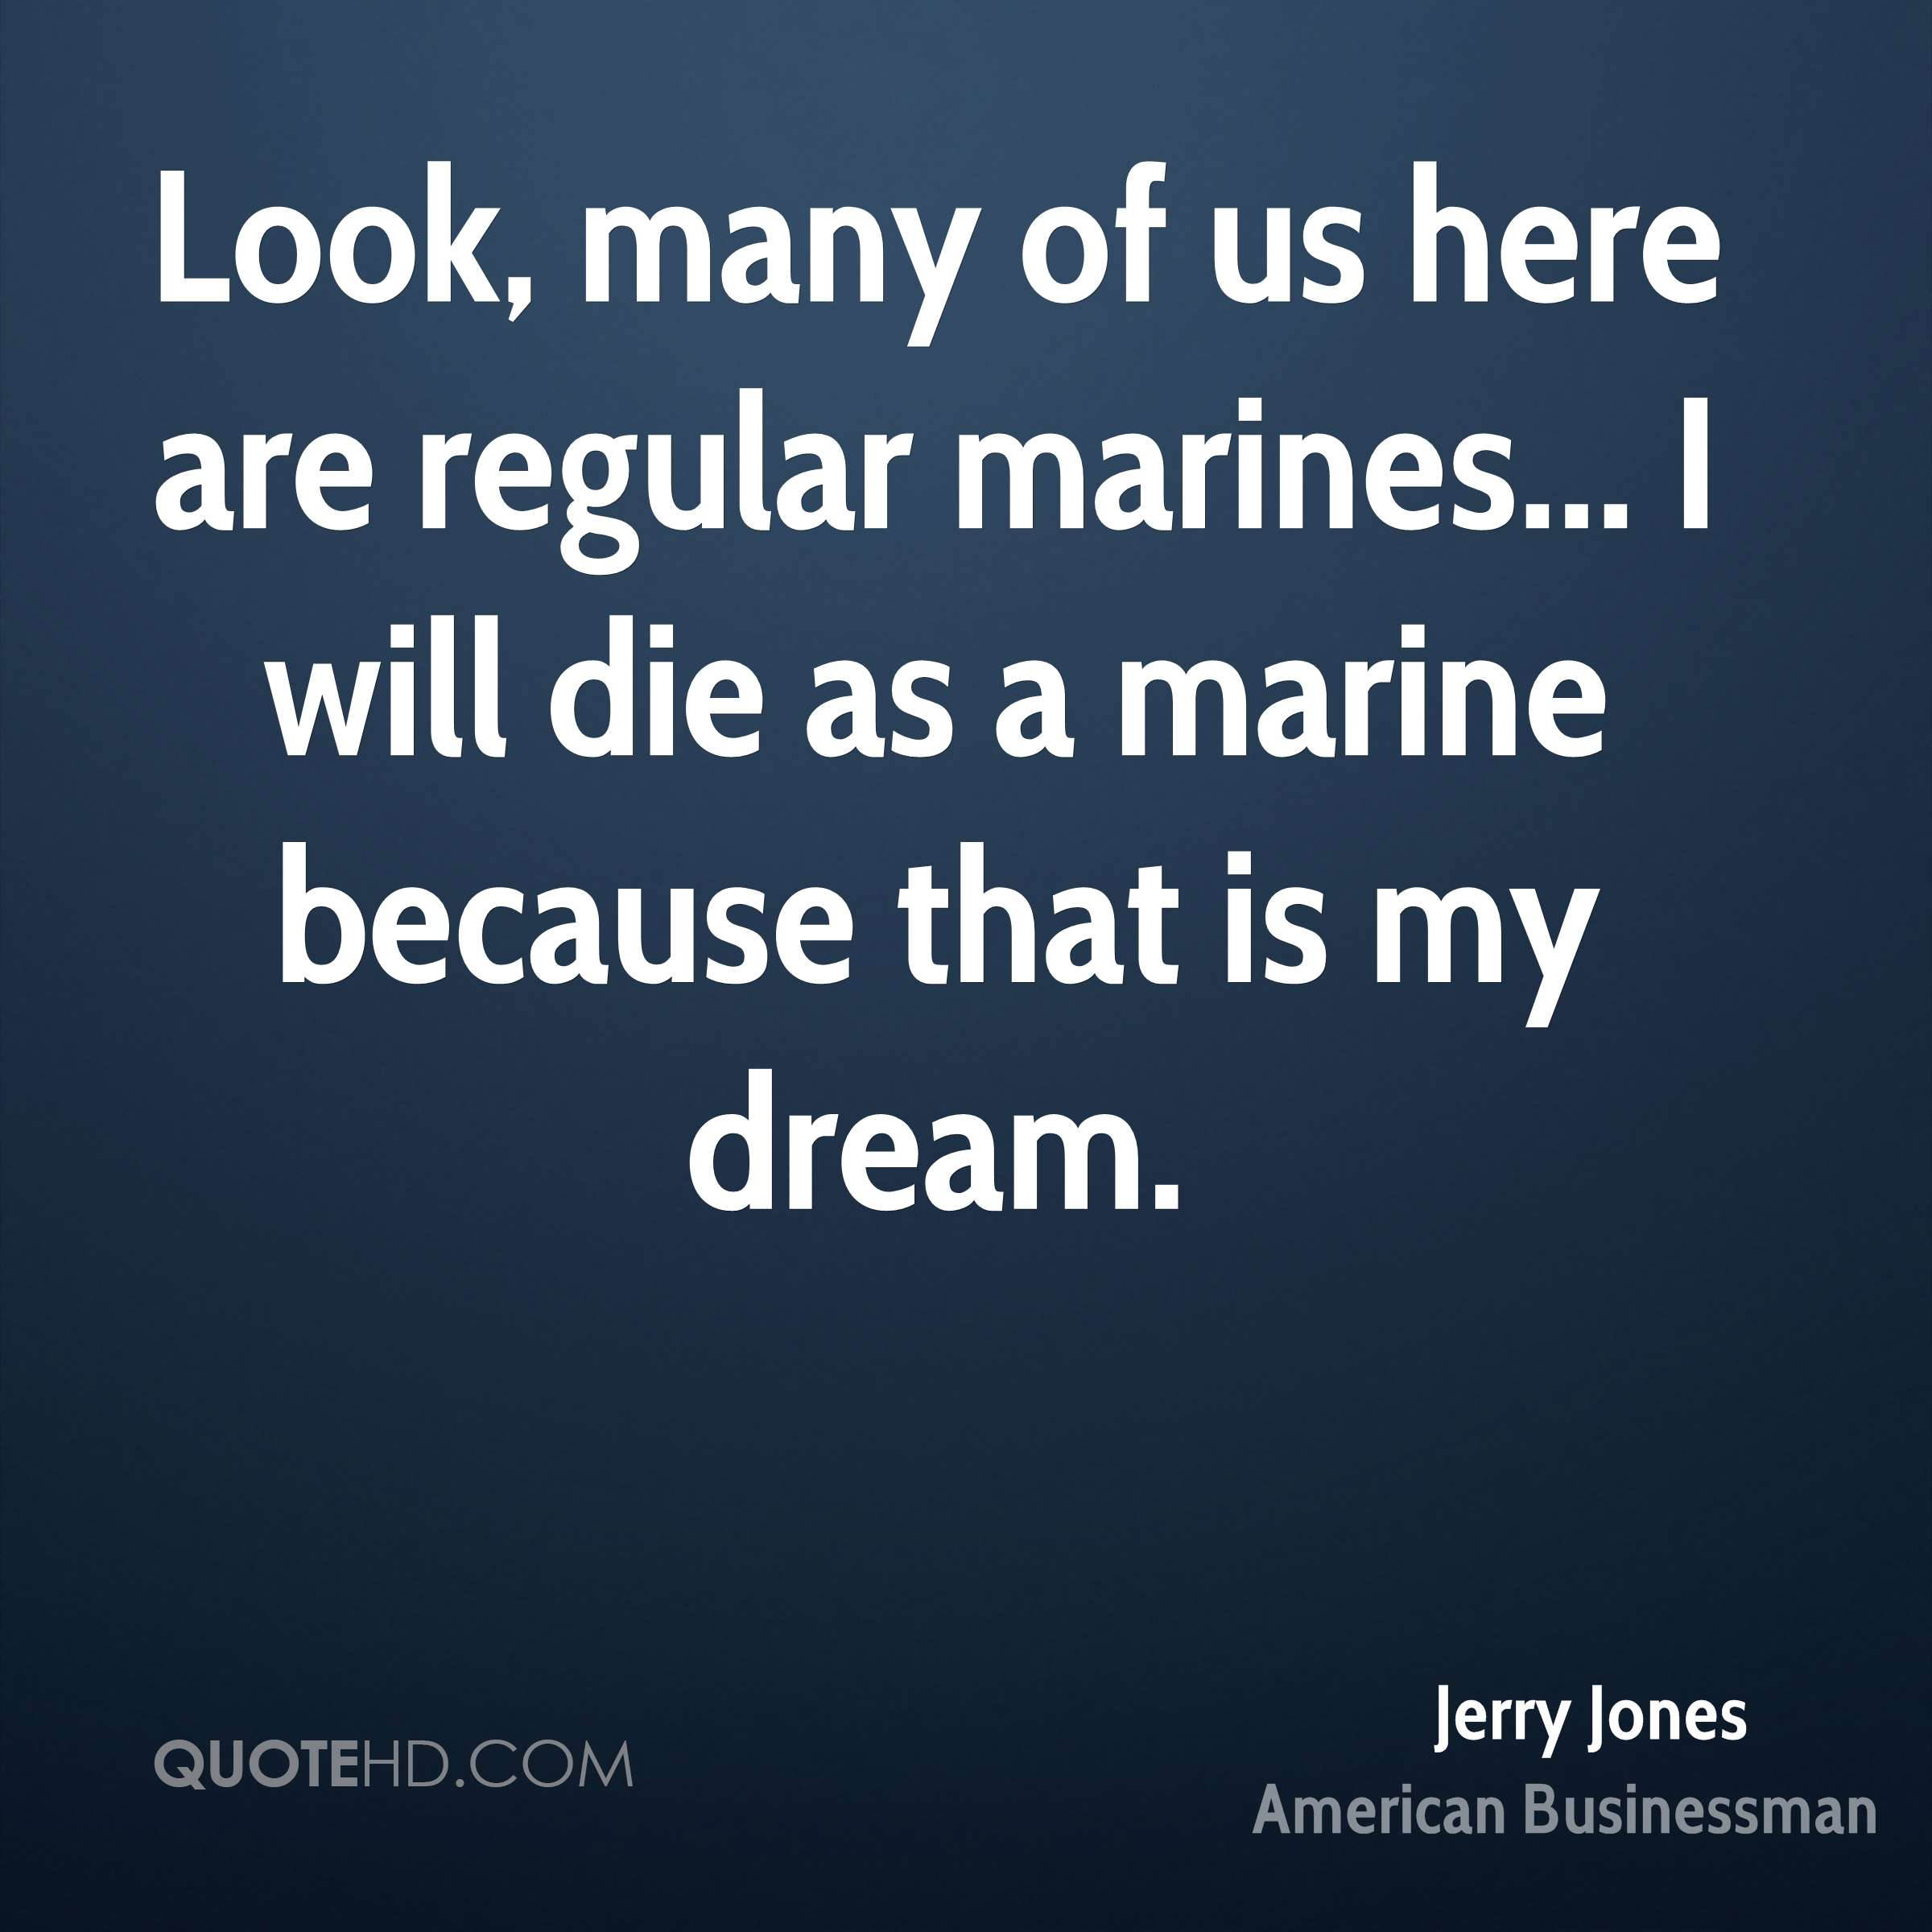 Look, many of us here are regular marines... I will die as a marine because that is my dream.